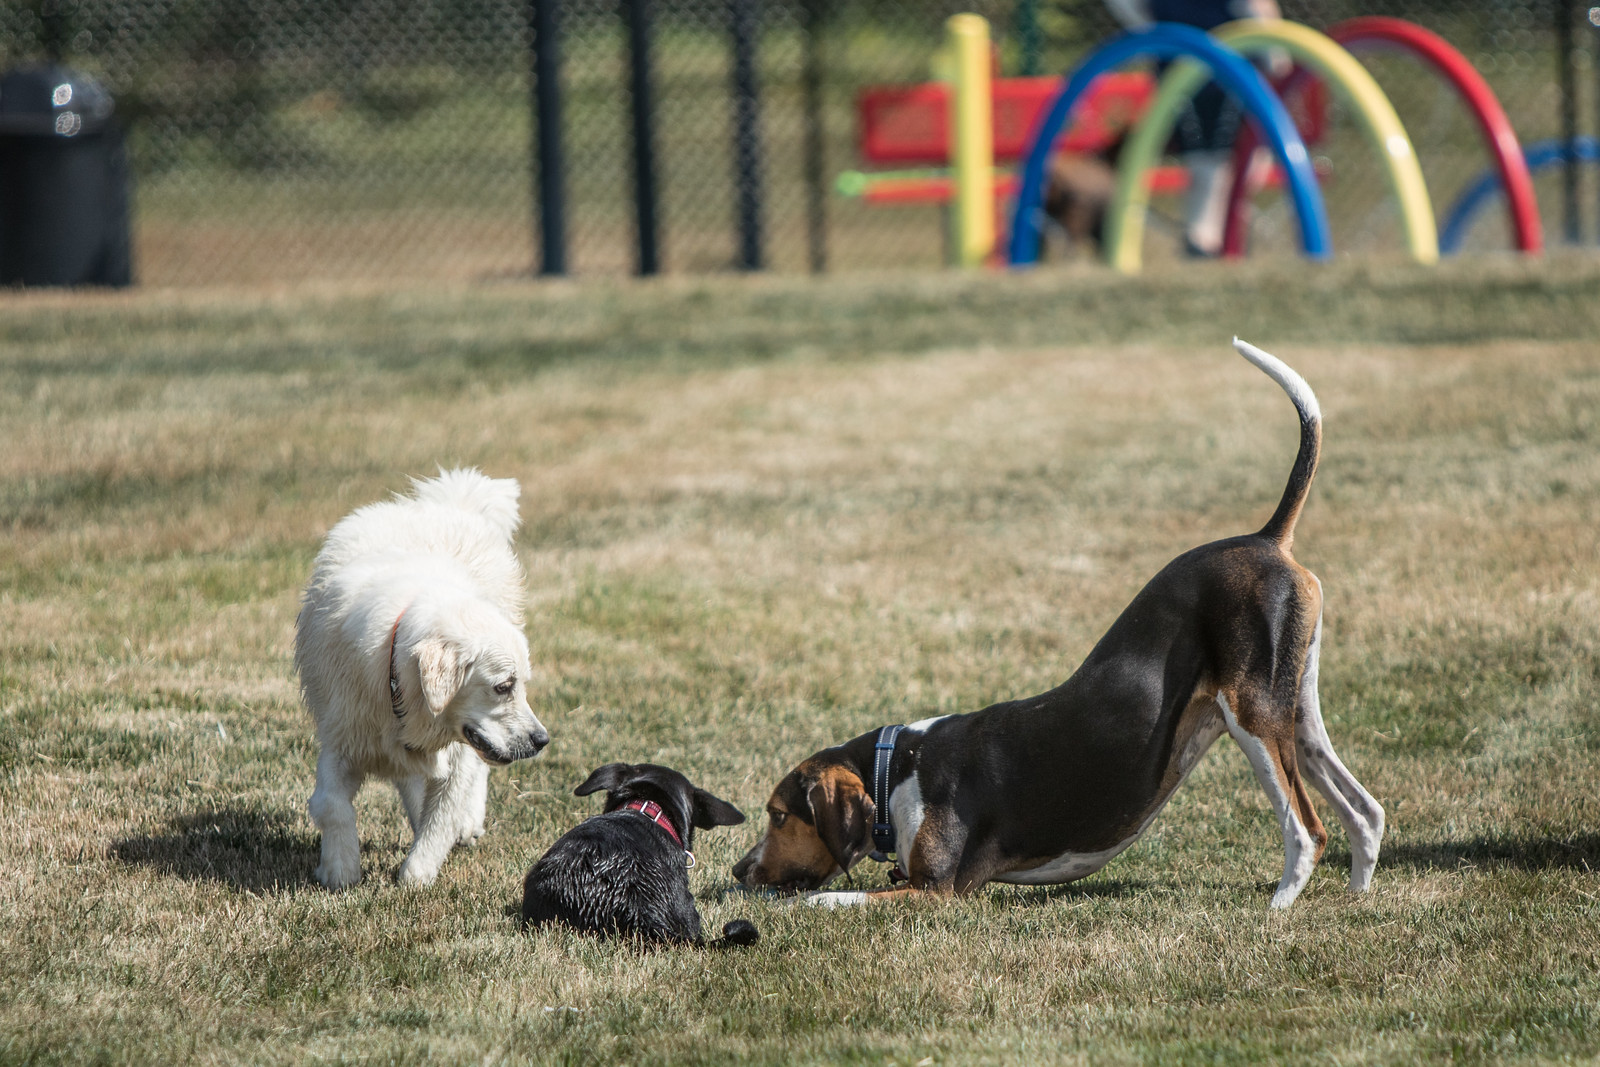 Decent A Play Happy Hounds Playground Photo Gallery Dog Doesn T Play Bow Teach Dog Play Bow A Example bark post Dog Play Bow